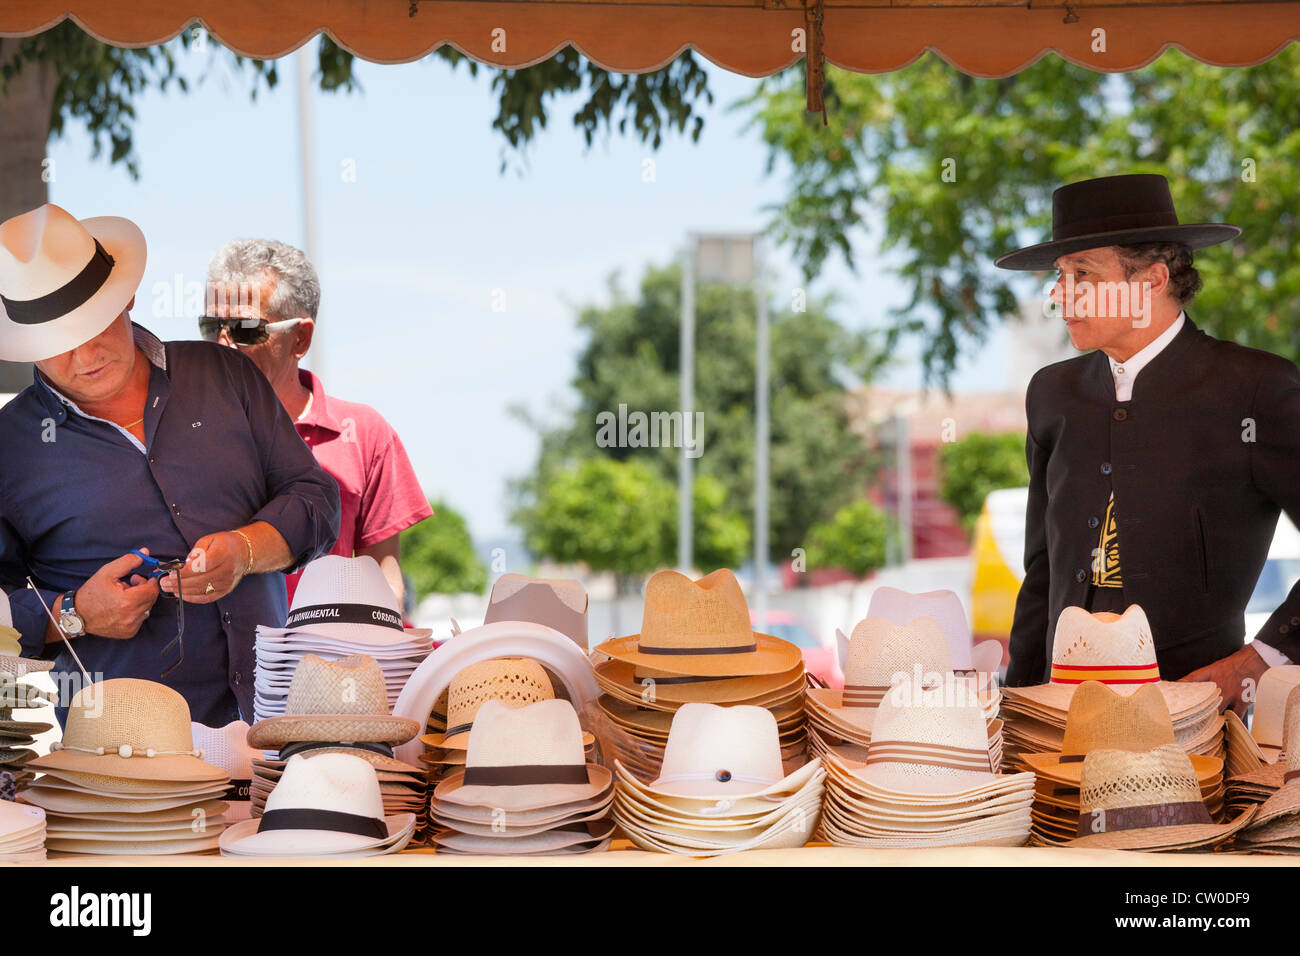 Market stall in Cordoba Andalusia Andalucia Spain.Hatter selling modern and traditional man's hats. - Stock Image